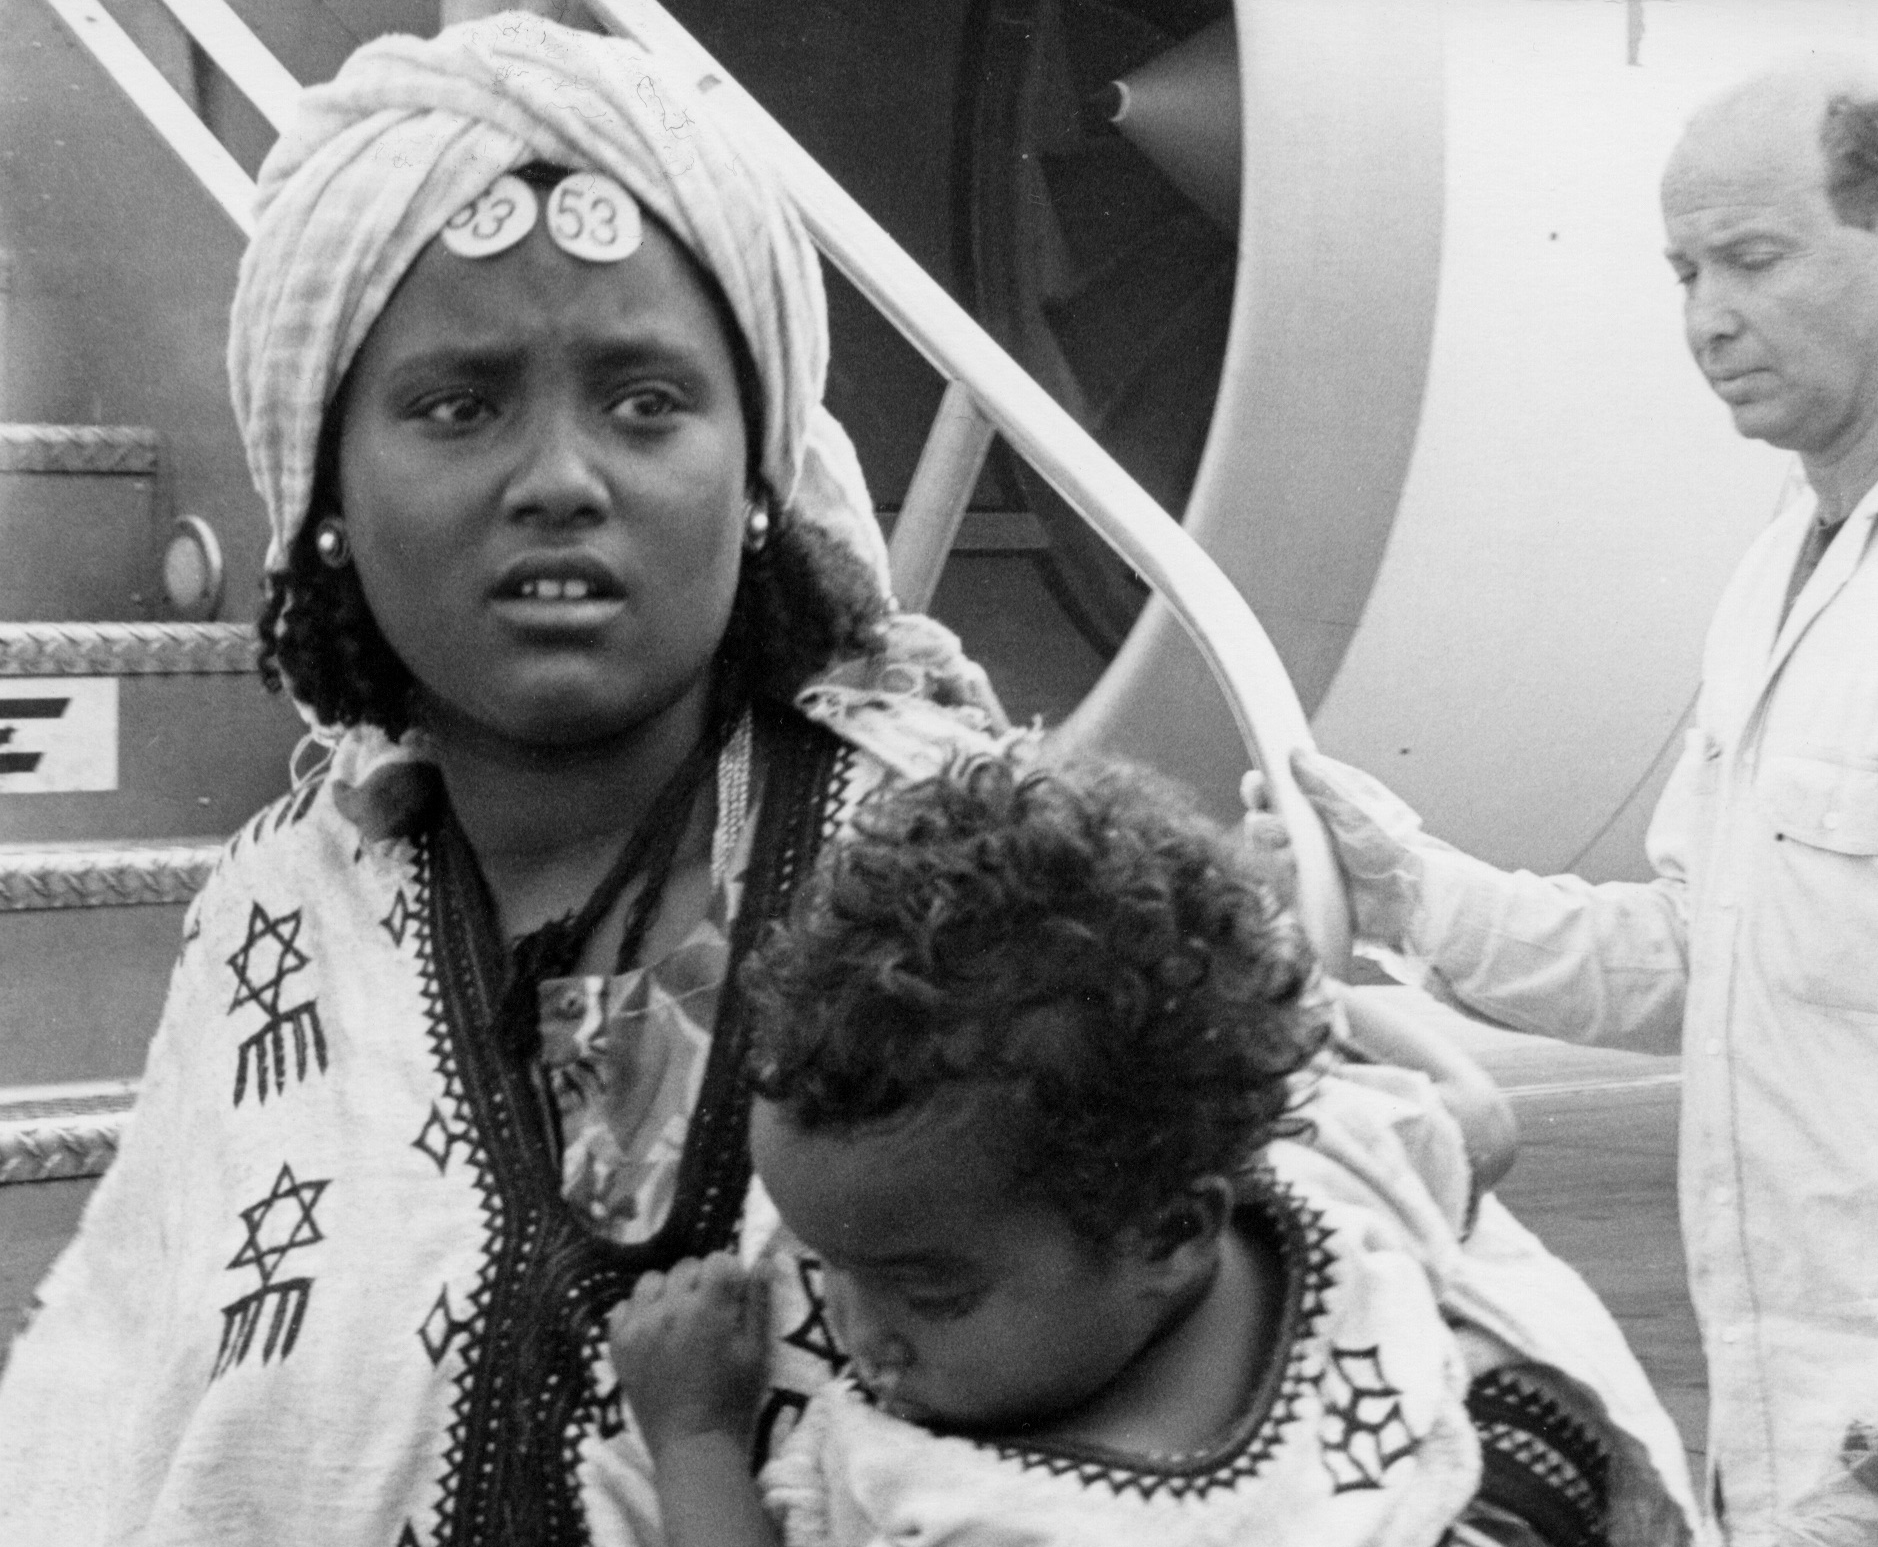 Operation Solomon airlifted the Beta Israel community, also known as Ethiopian Jews, from Addis Ababa to Israel on 24 May-25 May 1991